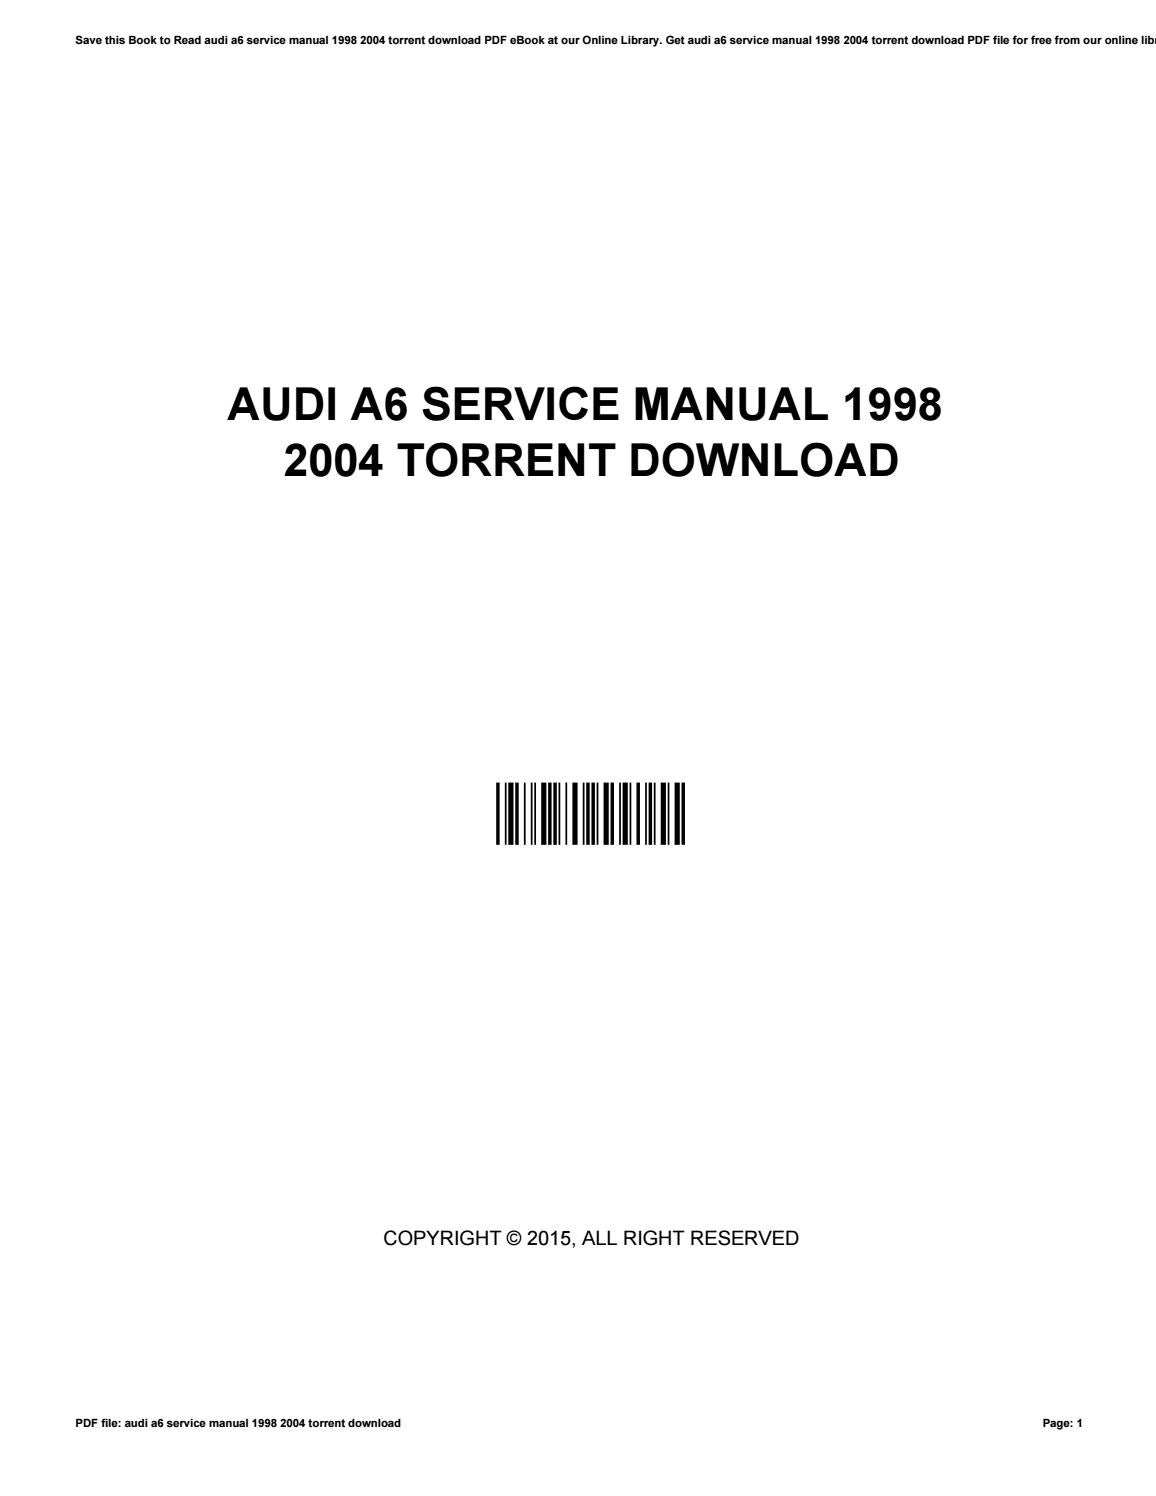 Audi a6 service manual 1998 2004 torrent download by MikeBiggs3613 - issuu